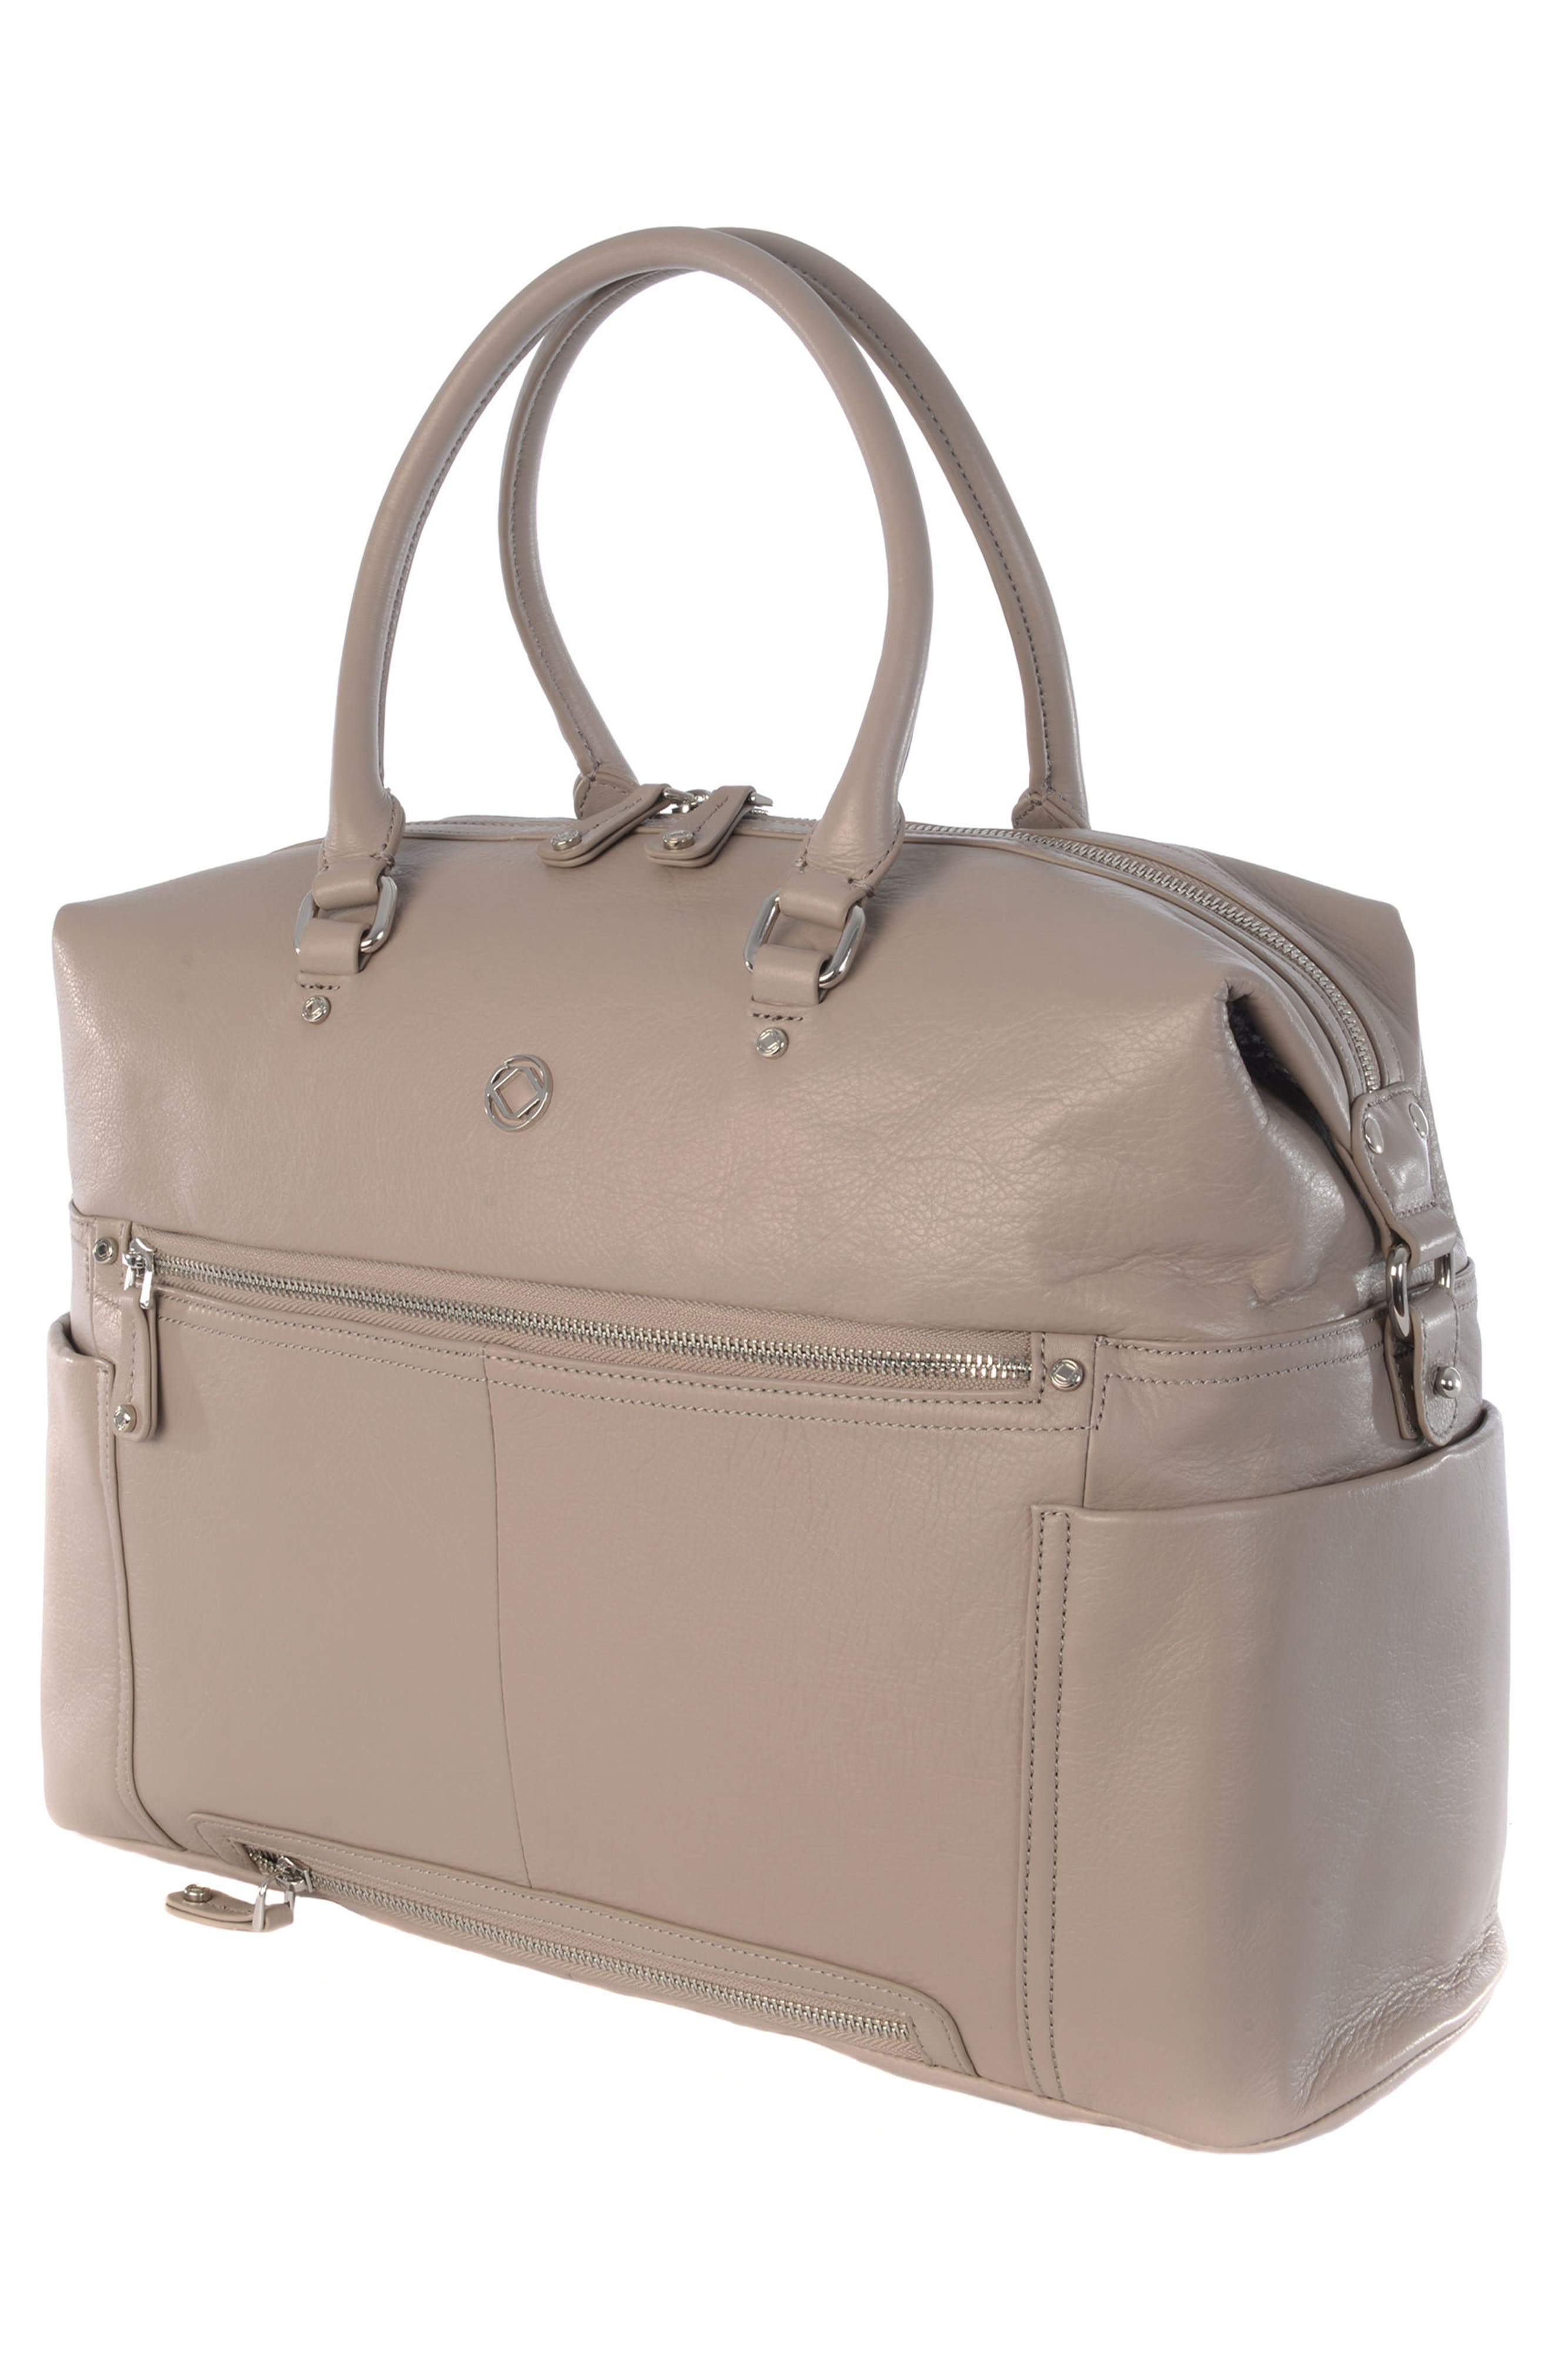 Thea Leather Diaper Bag,                             Alternate thumbnail 4, color,                             WARM GREY/ SILVER